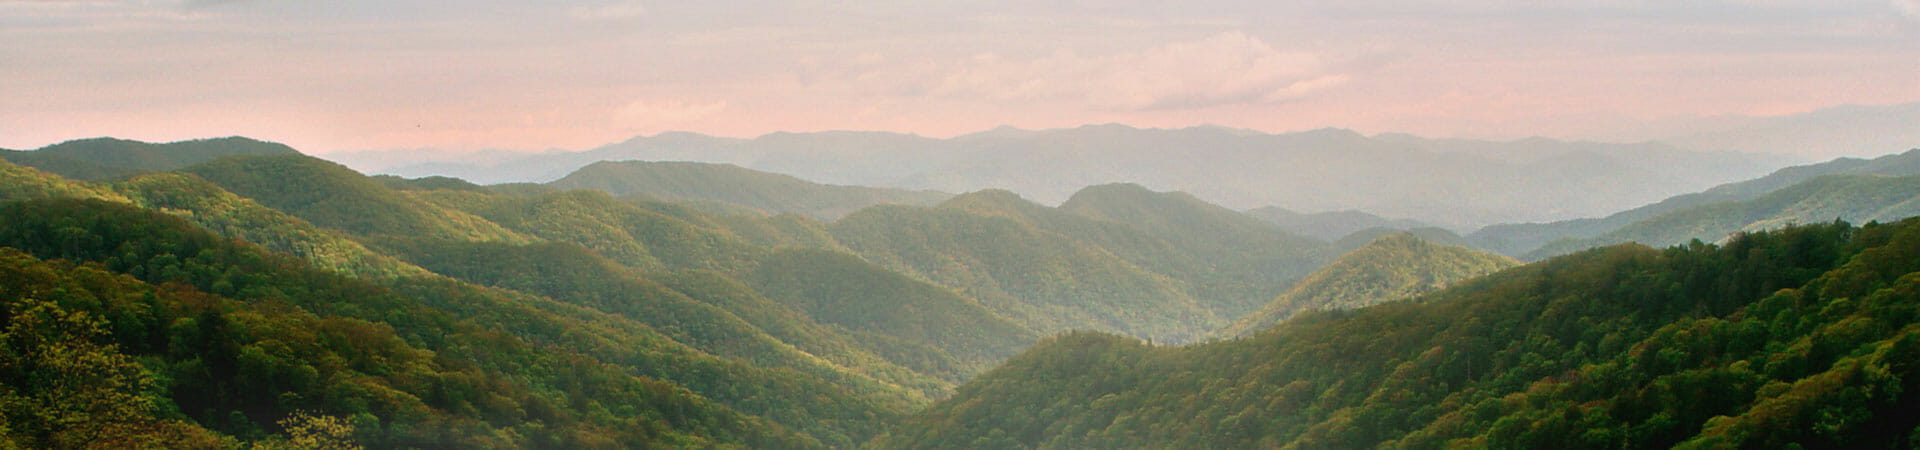 panorama-blue-ridge-mountains